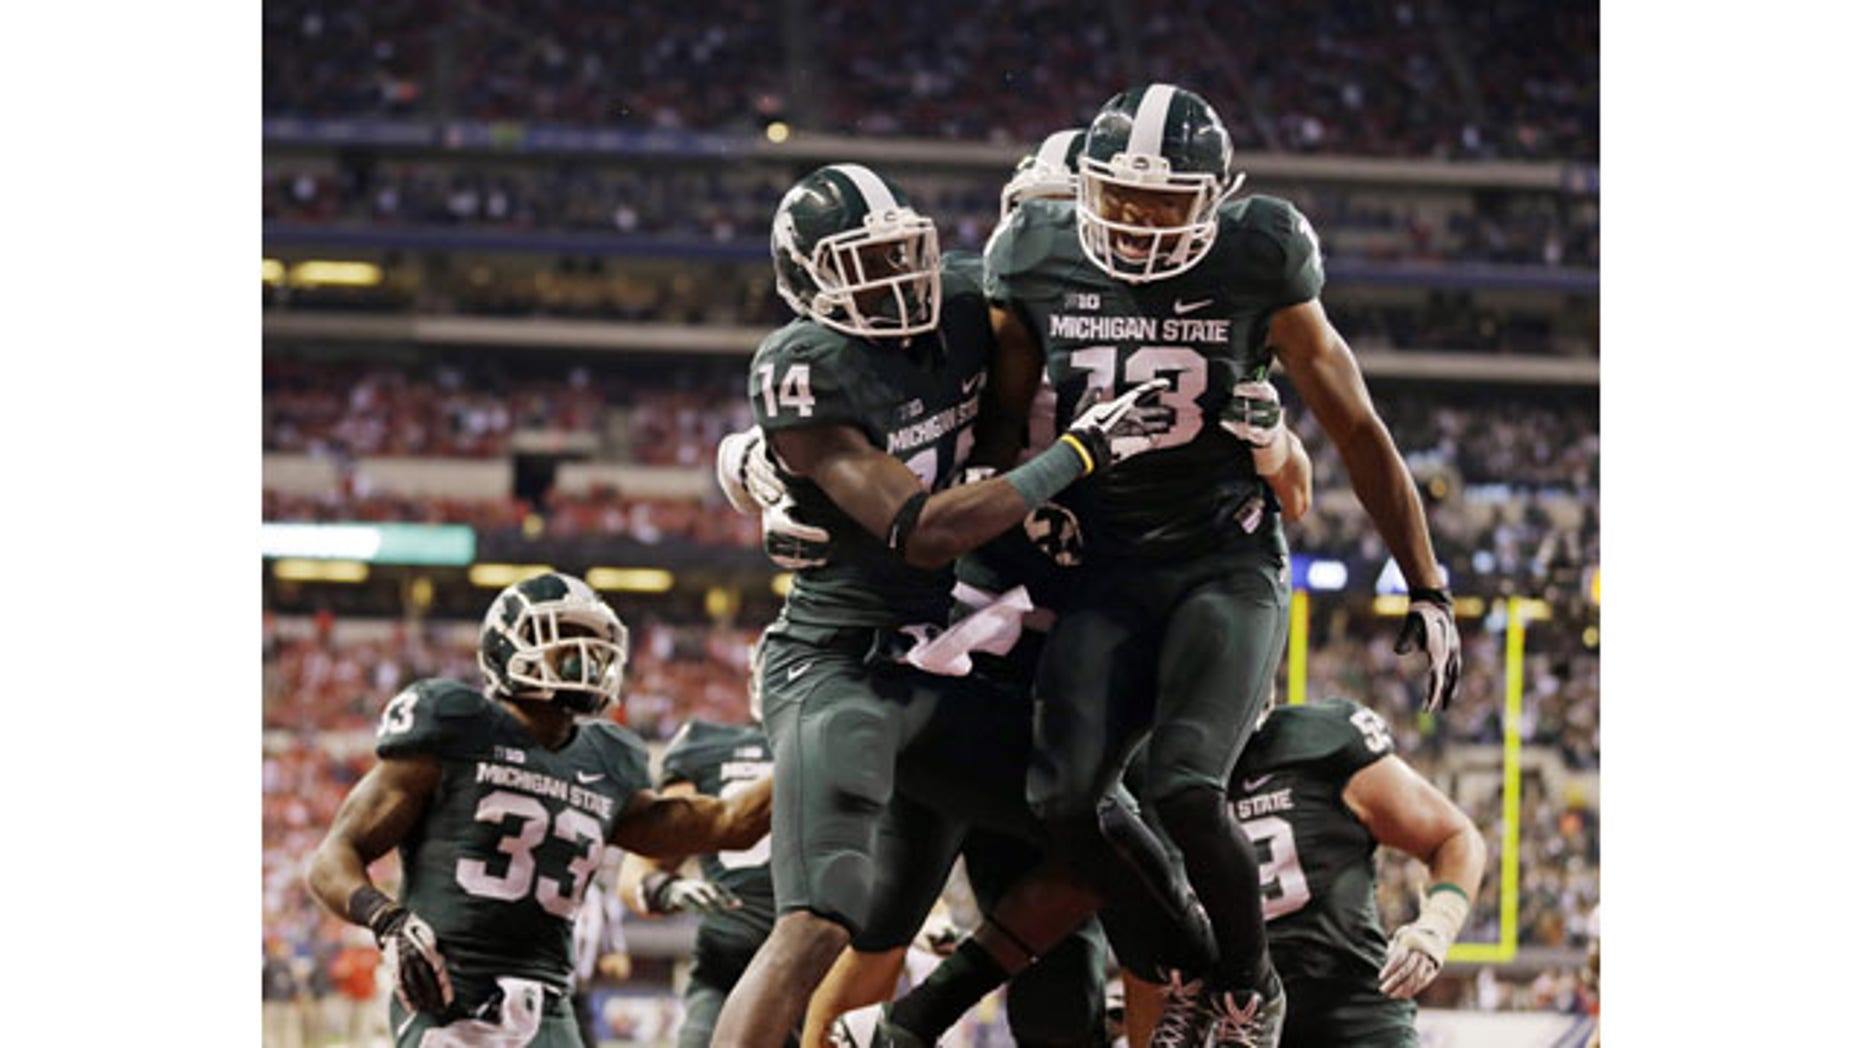 December 7, 2013: Michigan State's Tony Lippett (14) celebrates with Bennie Fowler (13) after a 33-yard touchdown reception by Lippett during the first half of the Big Ten championship game in Indianapolis. (AP Photo/Michael Conroy)